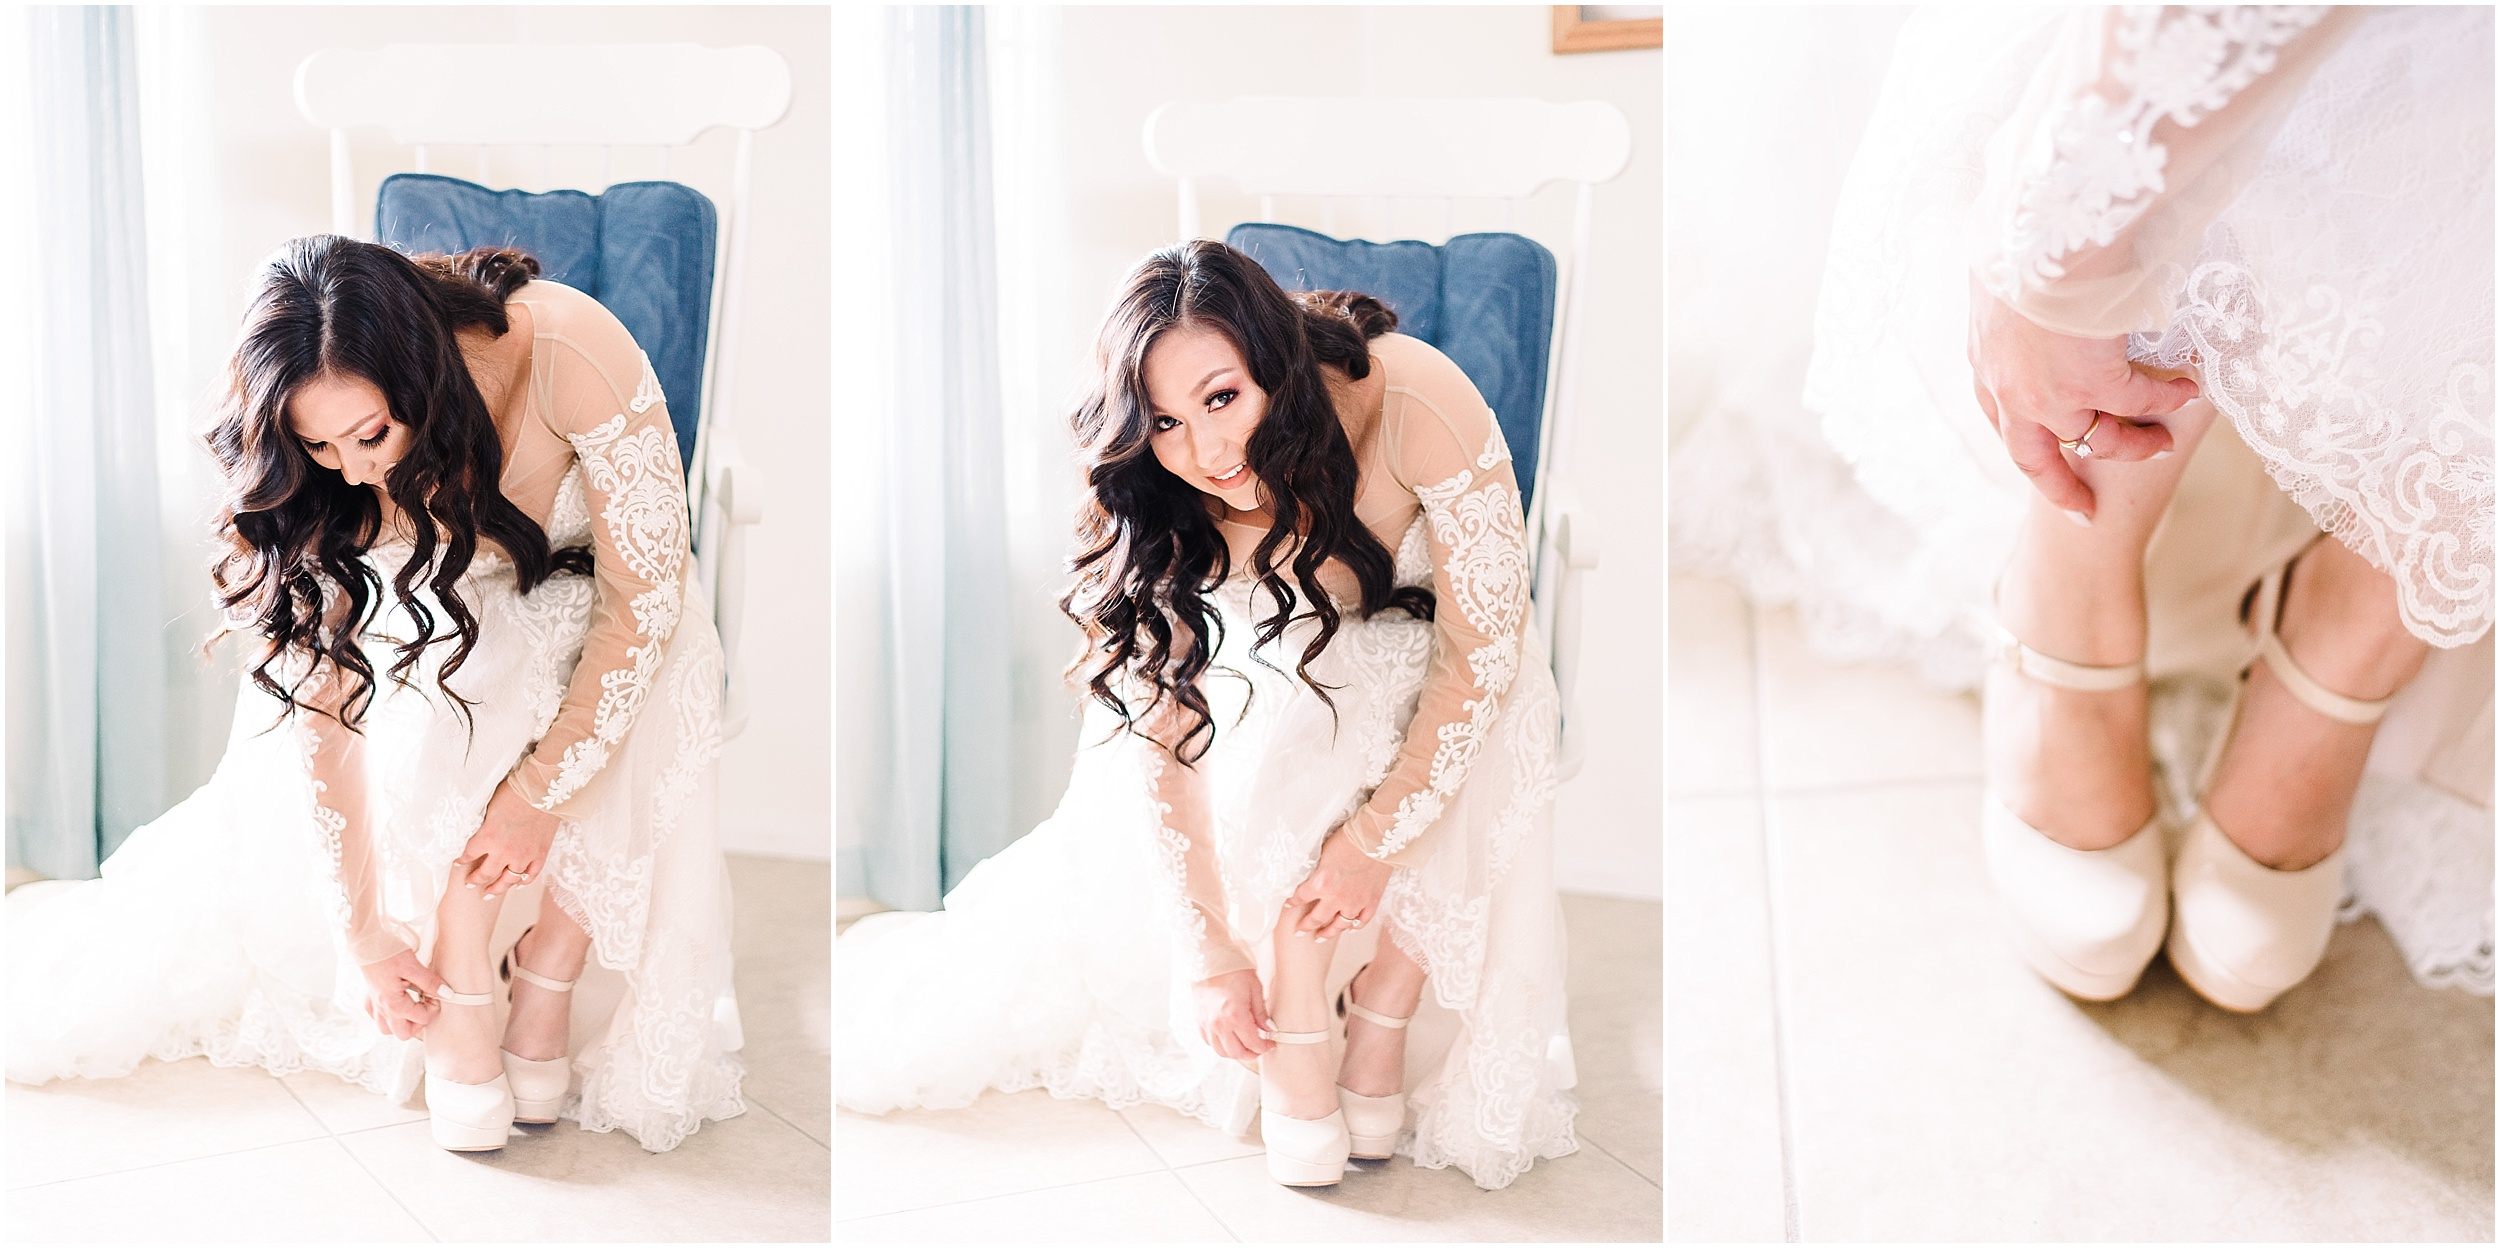 Ventura-California-and-Tallahassee-Florida-Wedding-Photographer-Crystal-and-Daniel-Wedding-at-Westlake-California_0012.jpg